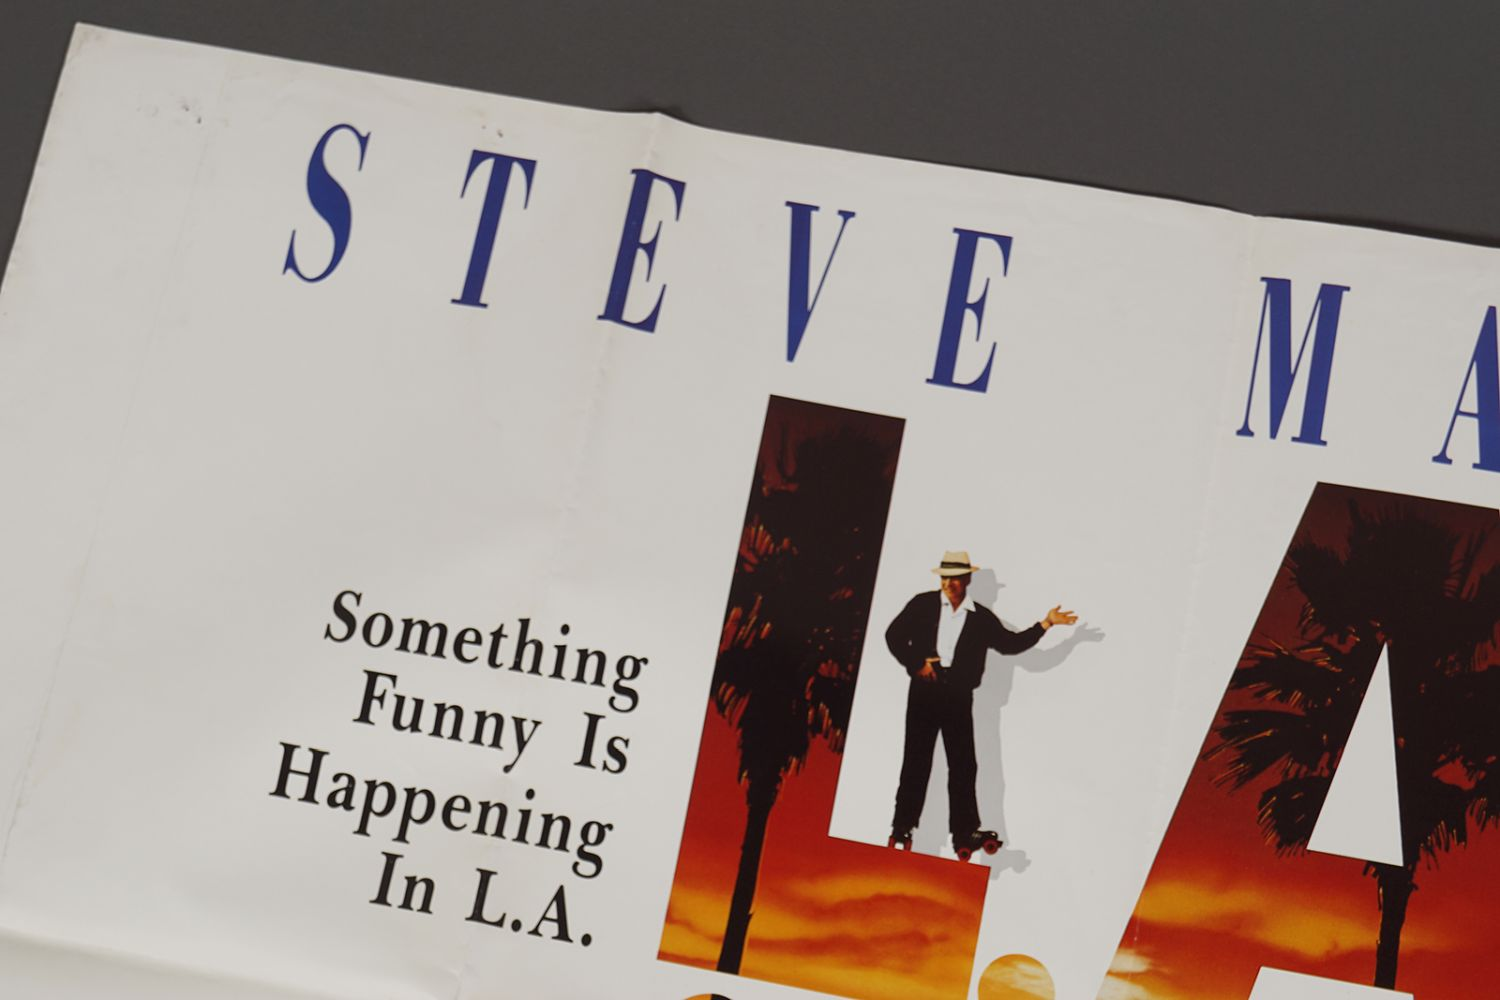 L.A. STORY - Image 3 of 3